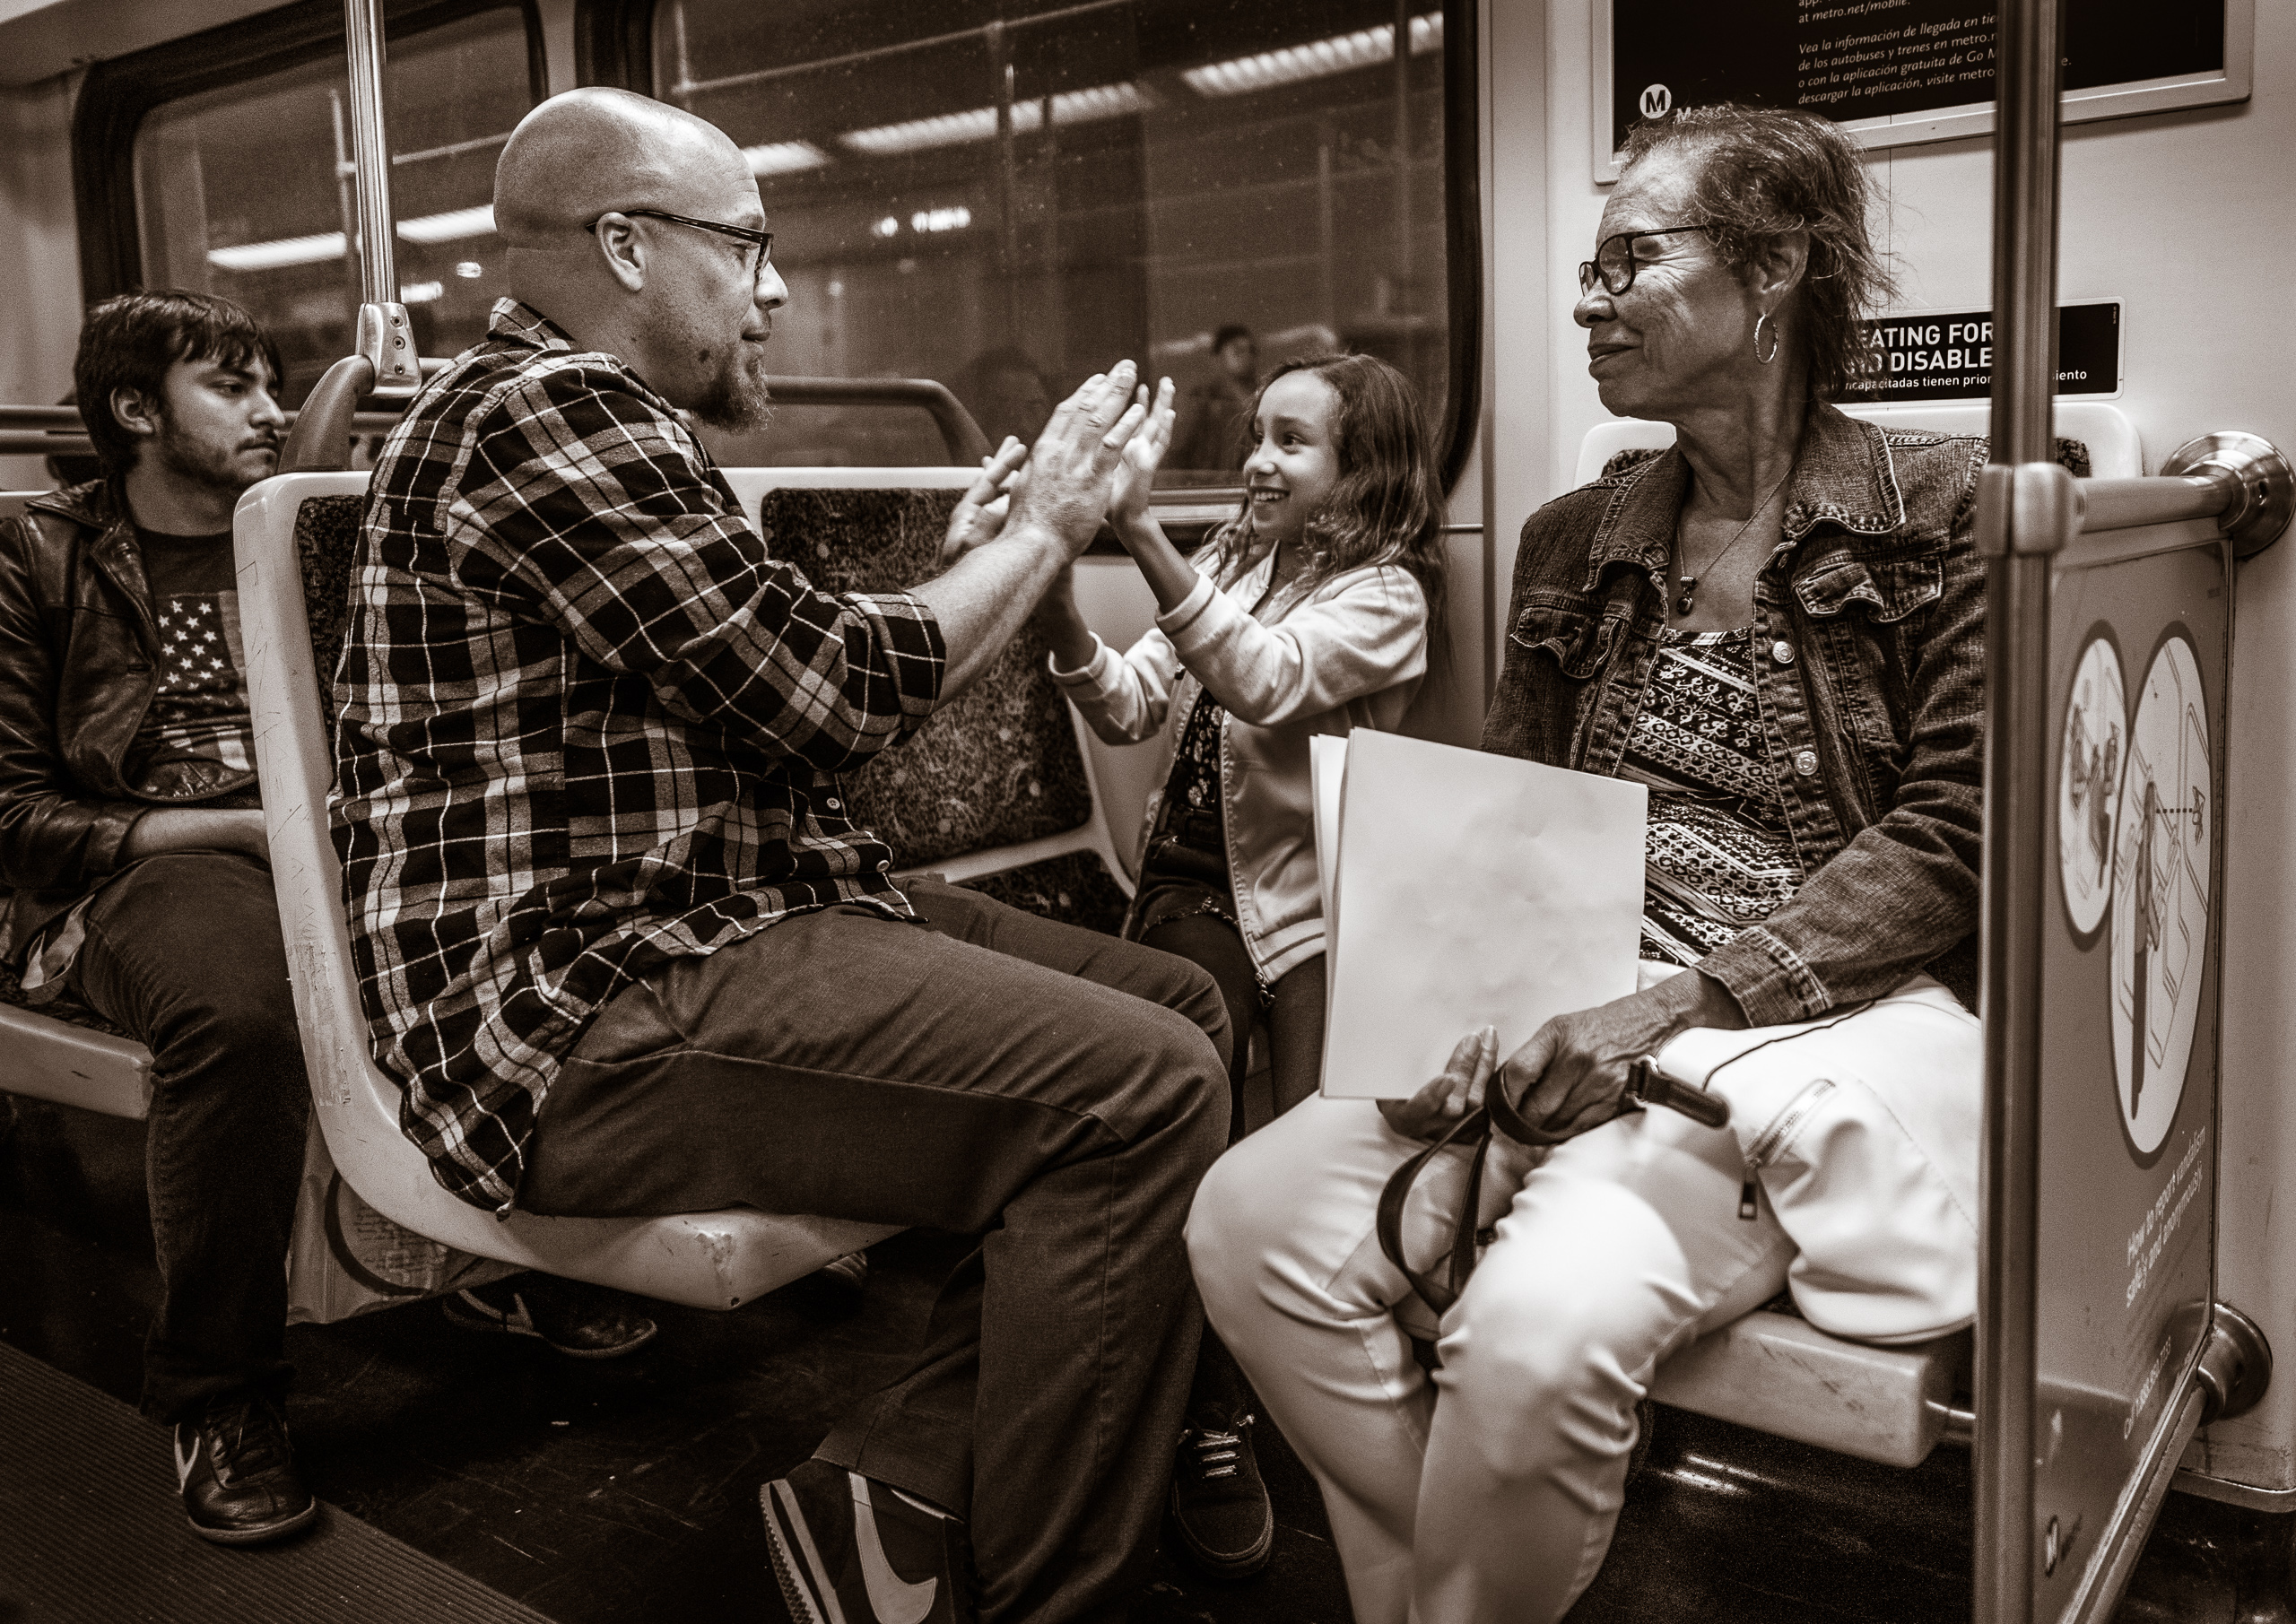 a father and daughter play Patty Cake on a Metro Red Line car as grandma watches and smiles